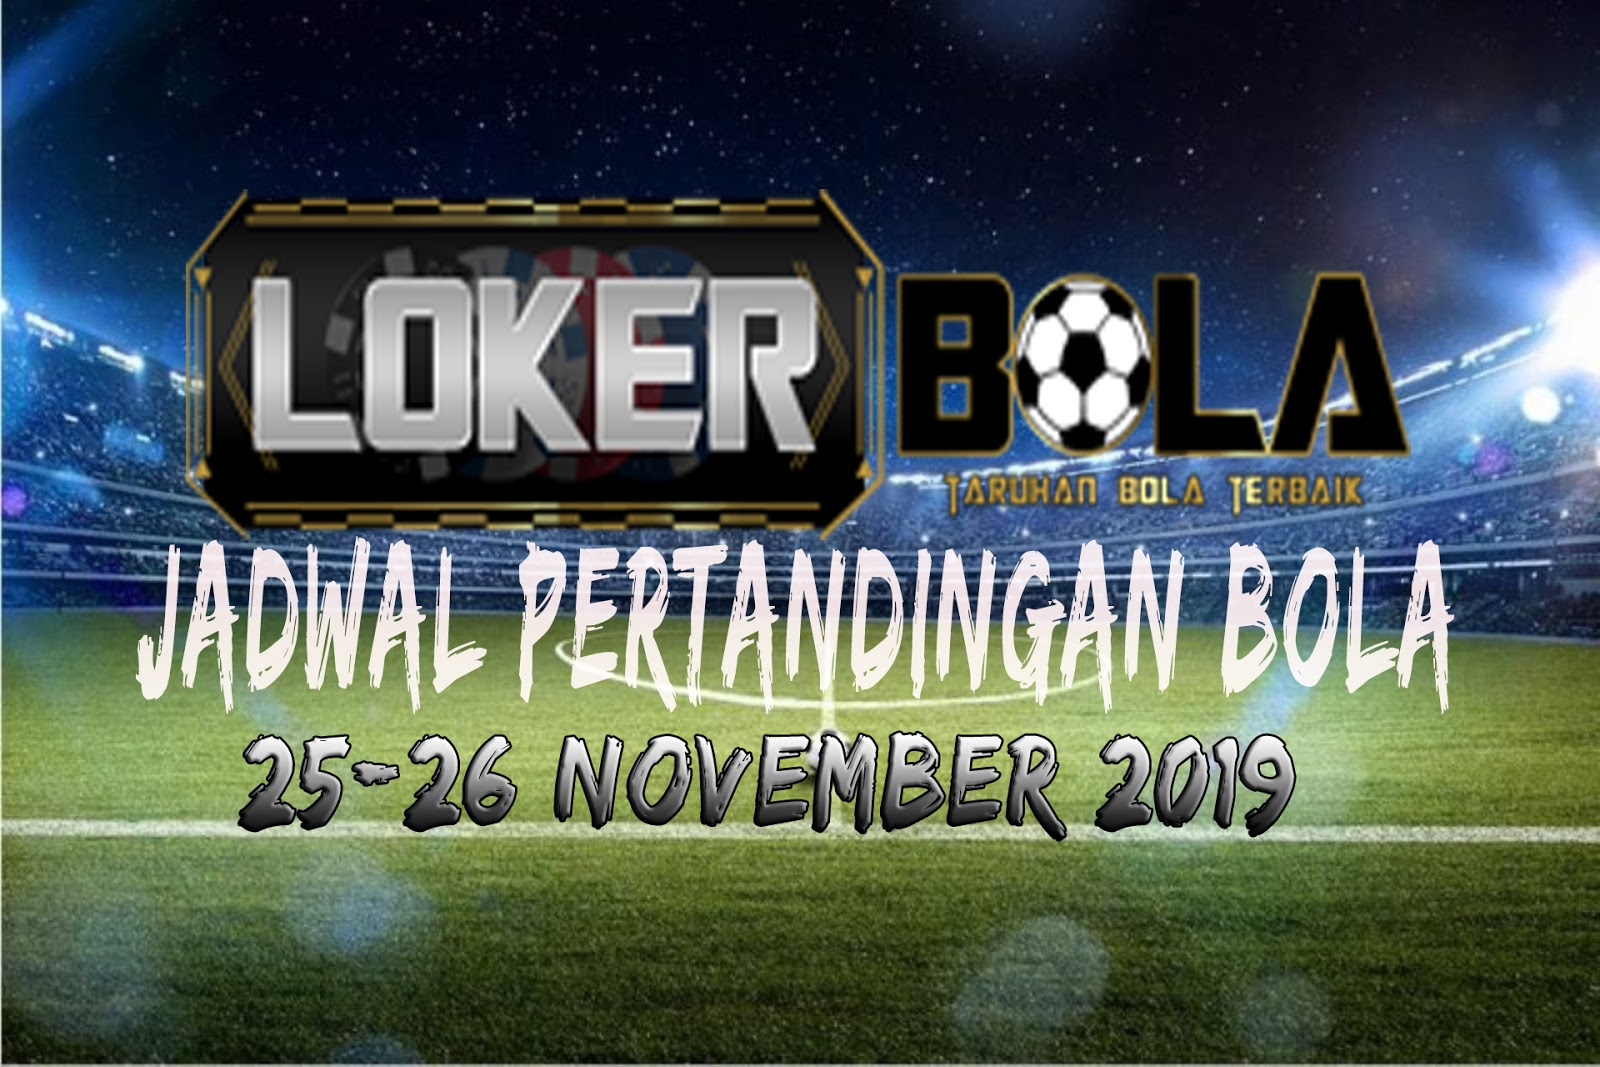 JADWAL PERTANDINGAN BOLA 24 – 25 NOVEMBER 2019